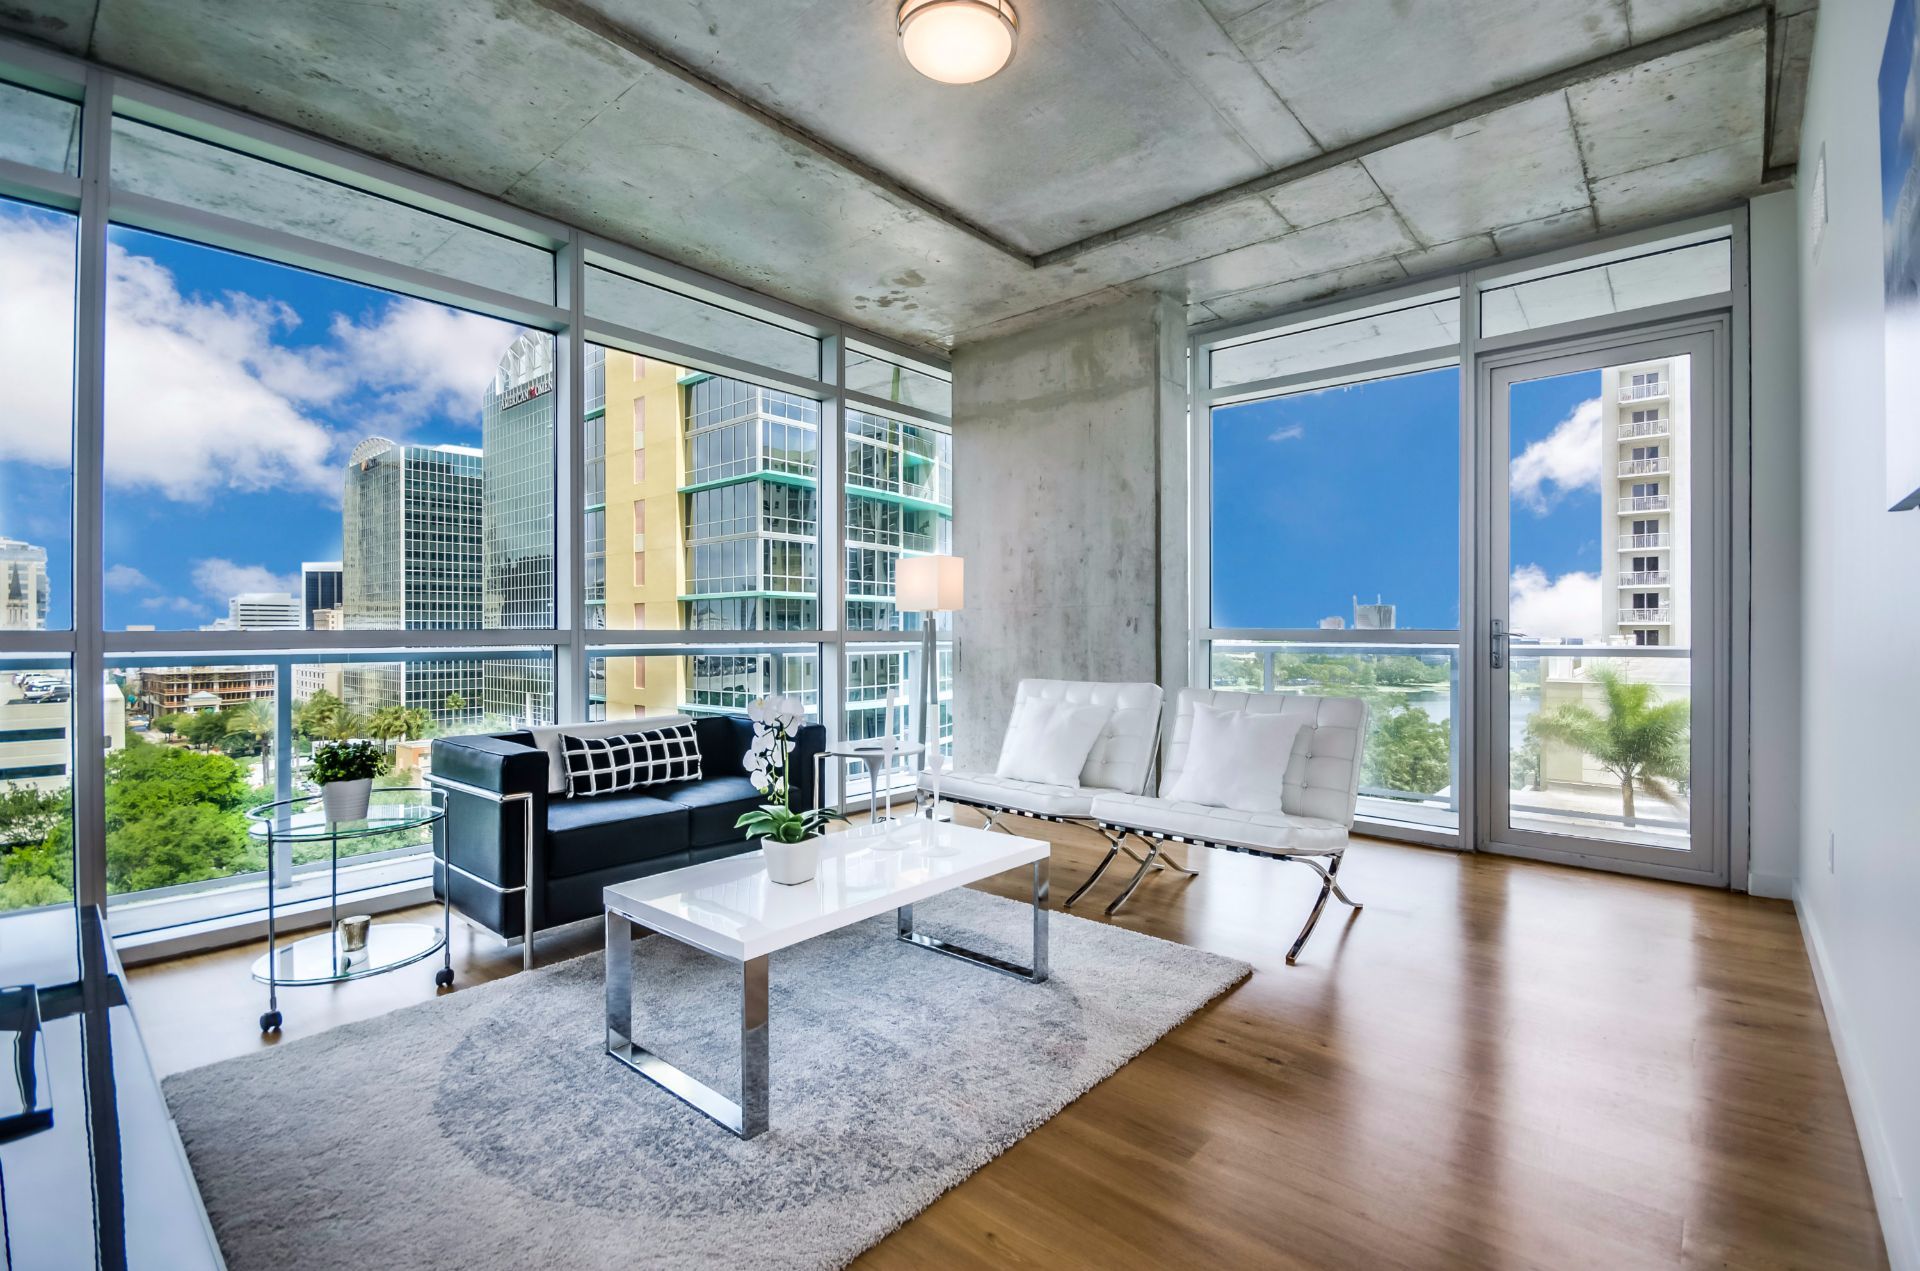 Apartment living room interior with wall-to-wall windows